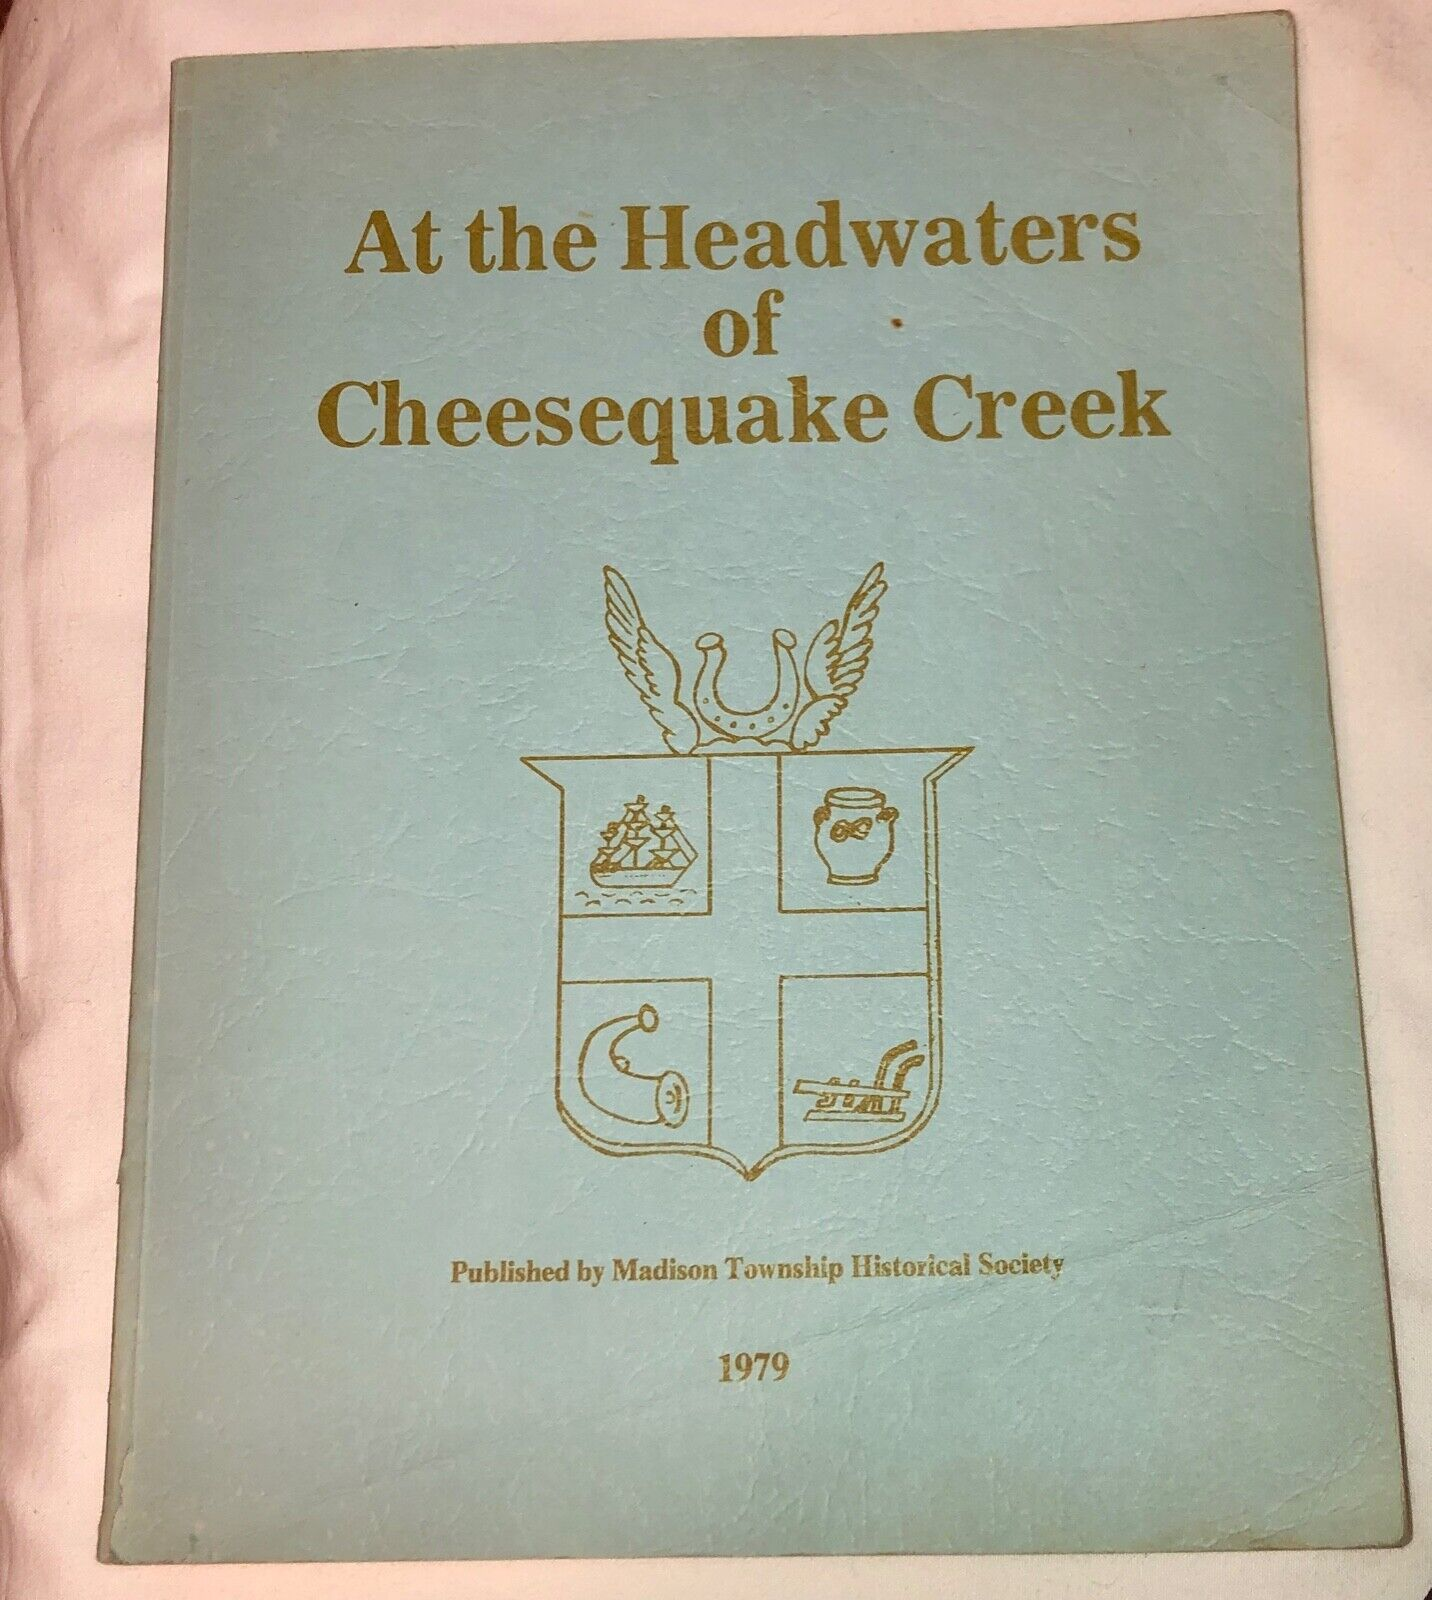 1979 At The Headwaters Of Cheesequake Creek Book - $0.99